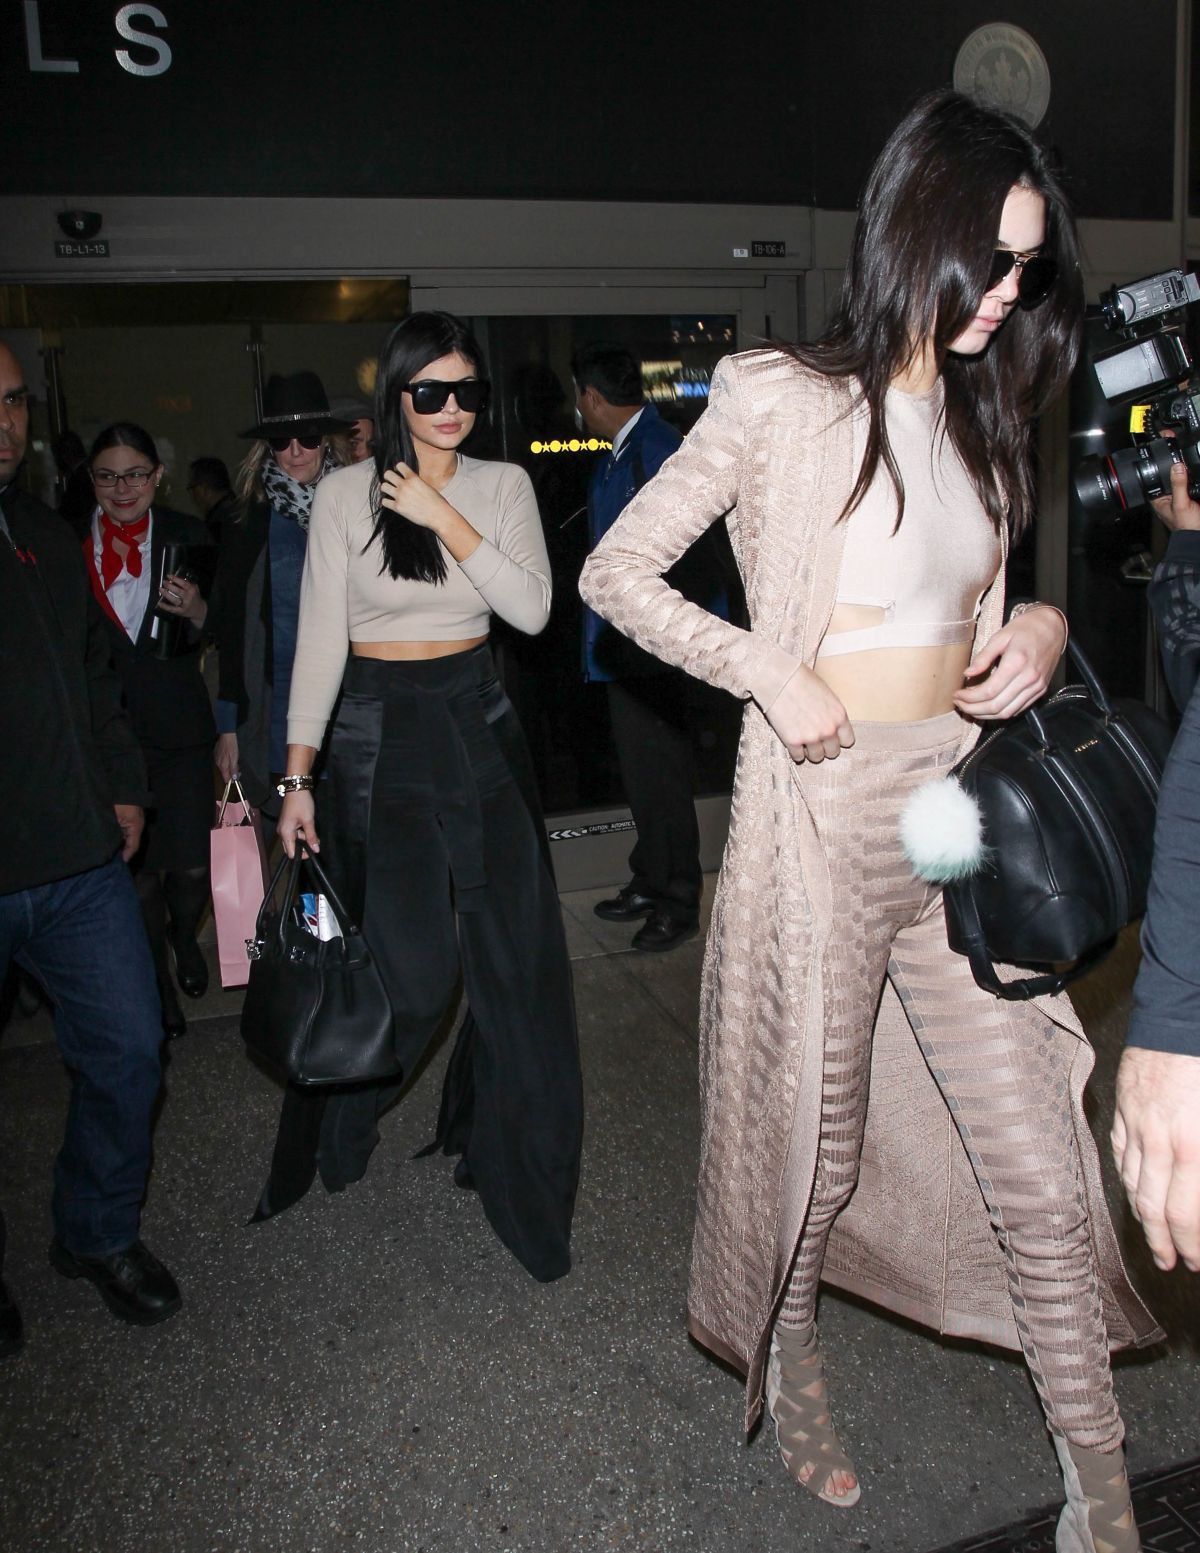 KENDALL and KYLIE JEENER Arrives at LAX AIrport in Los Angeles 11/19/2015